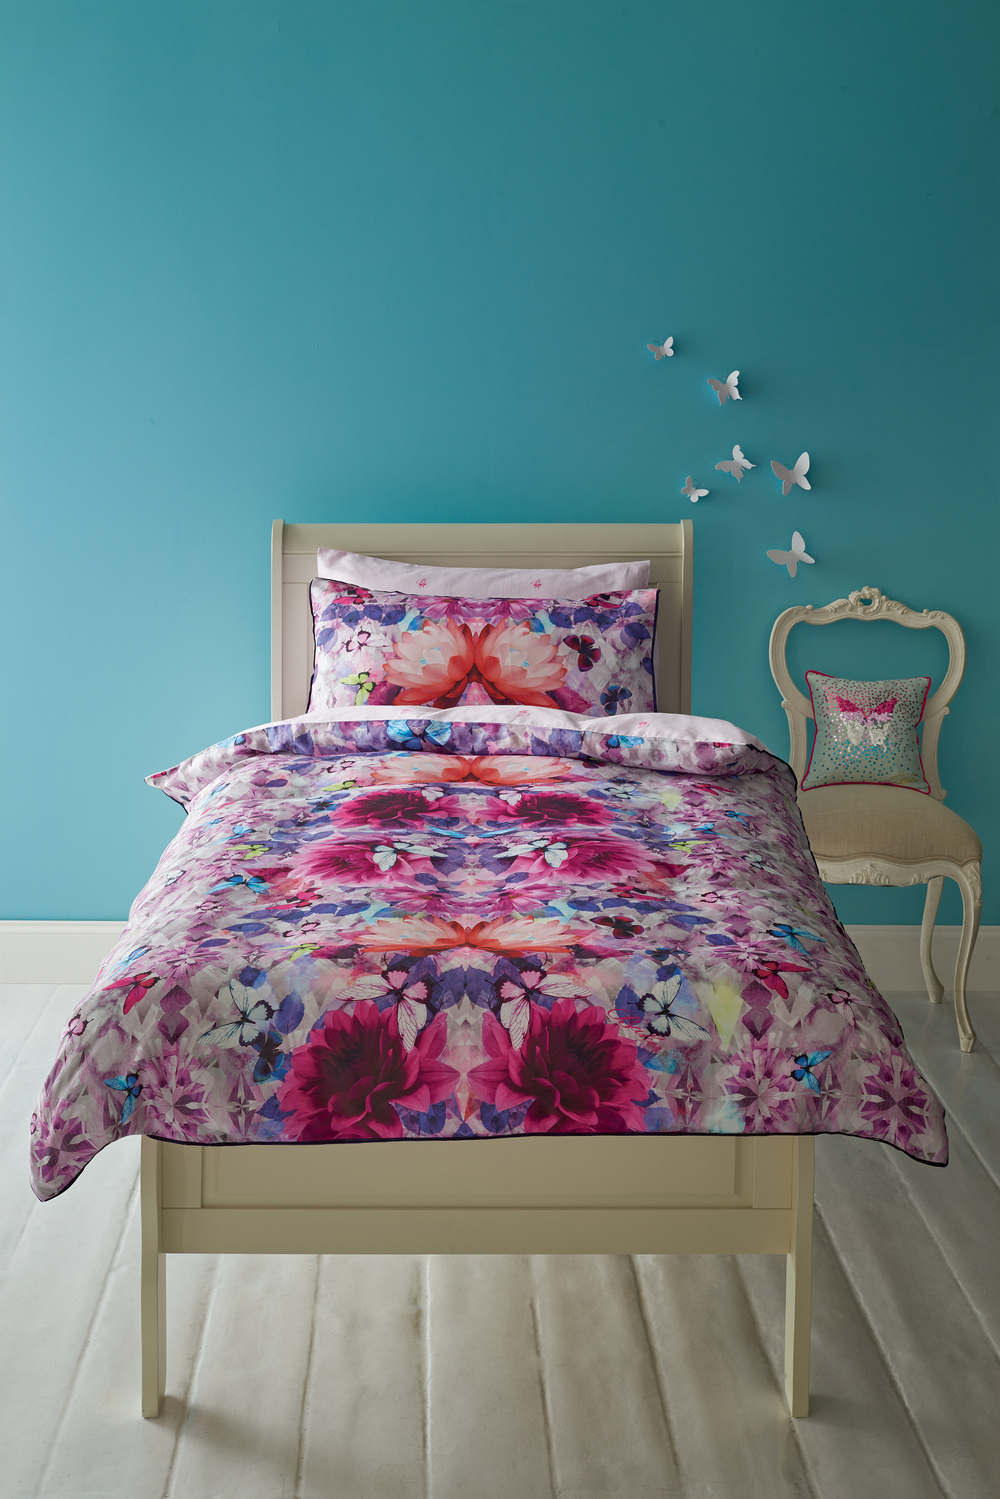 Crystal floral duvet set, £50.